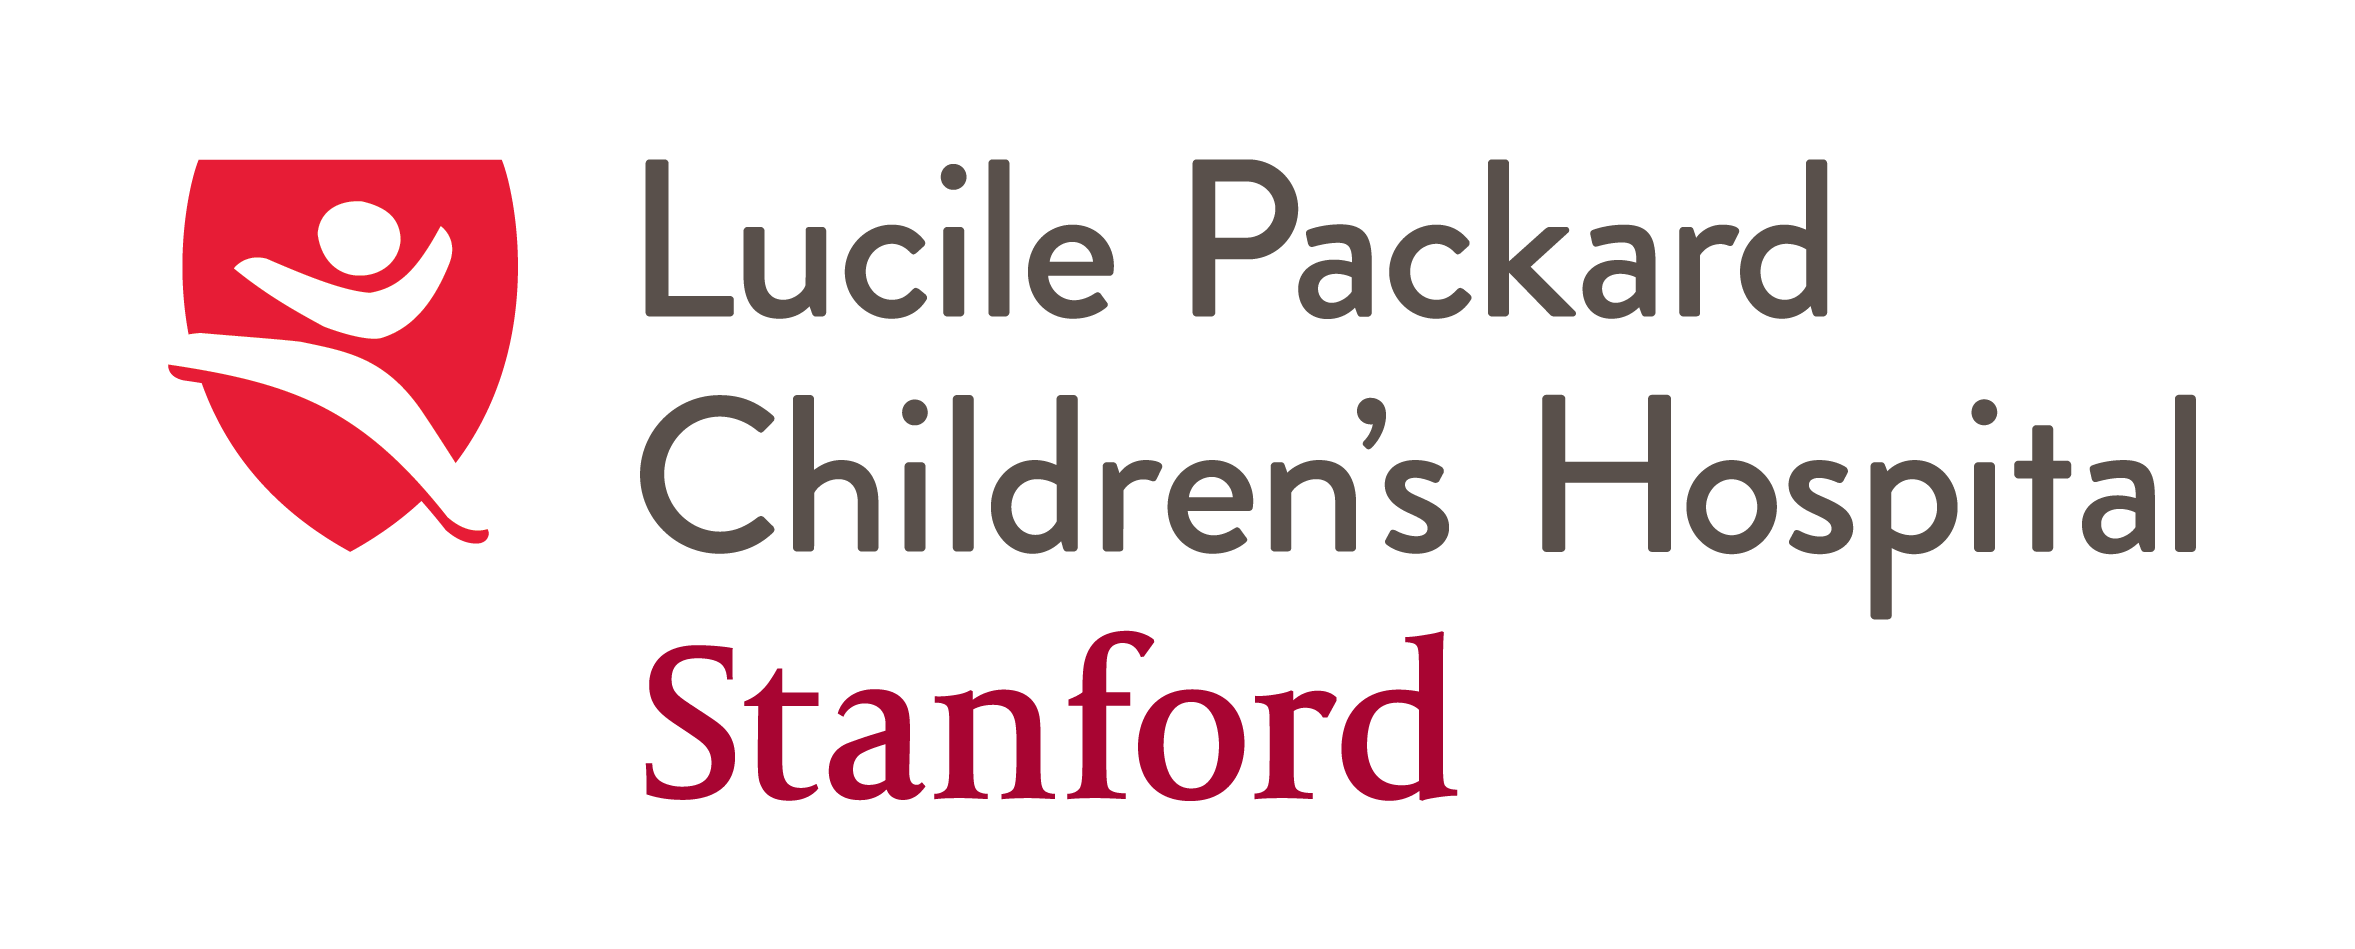 "{""zh-hans"":""露西尔帕卡德儿童医院"",""en-us"":""Lucile Packard Children's Hospital""}"